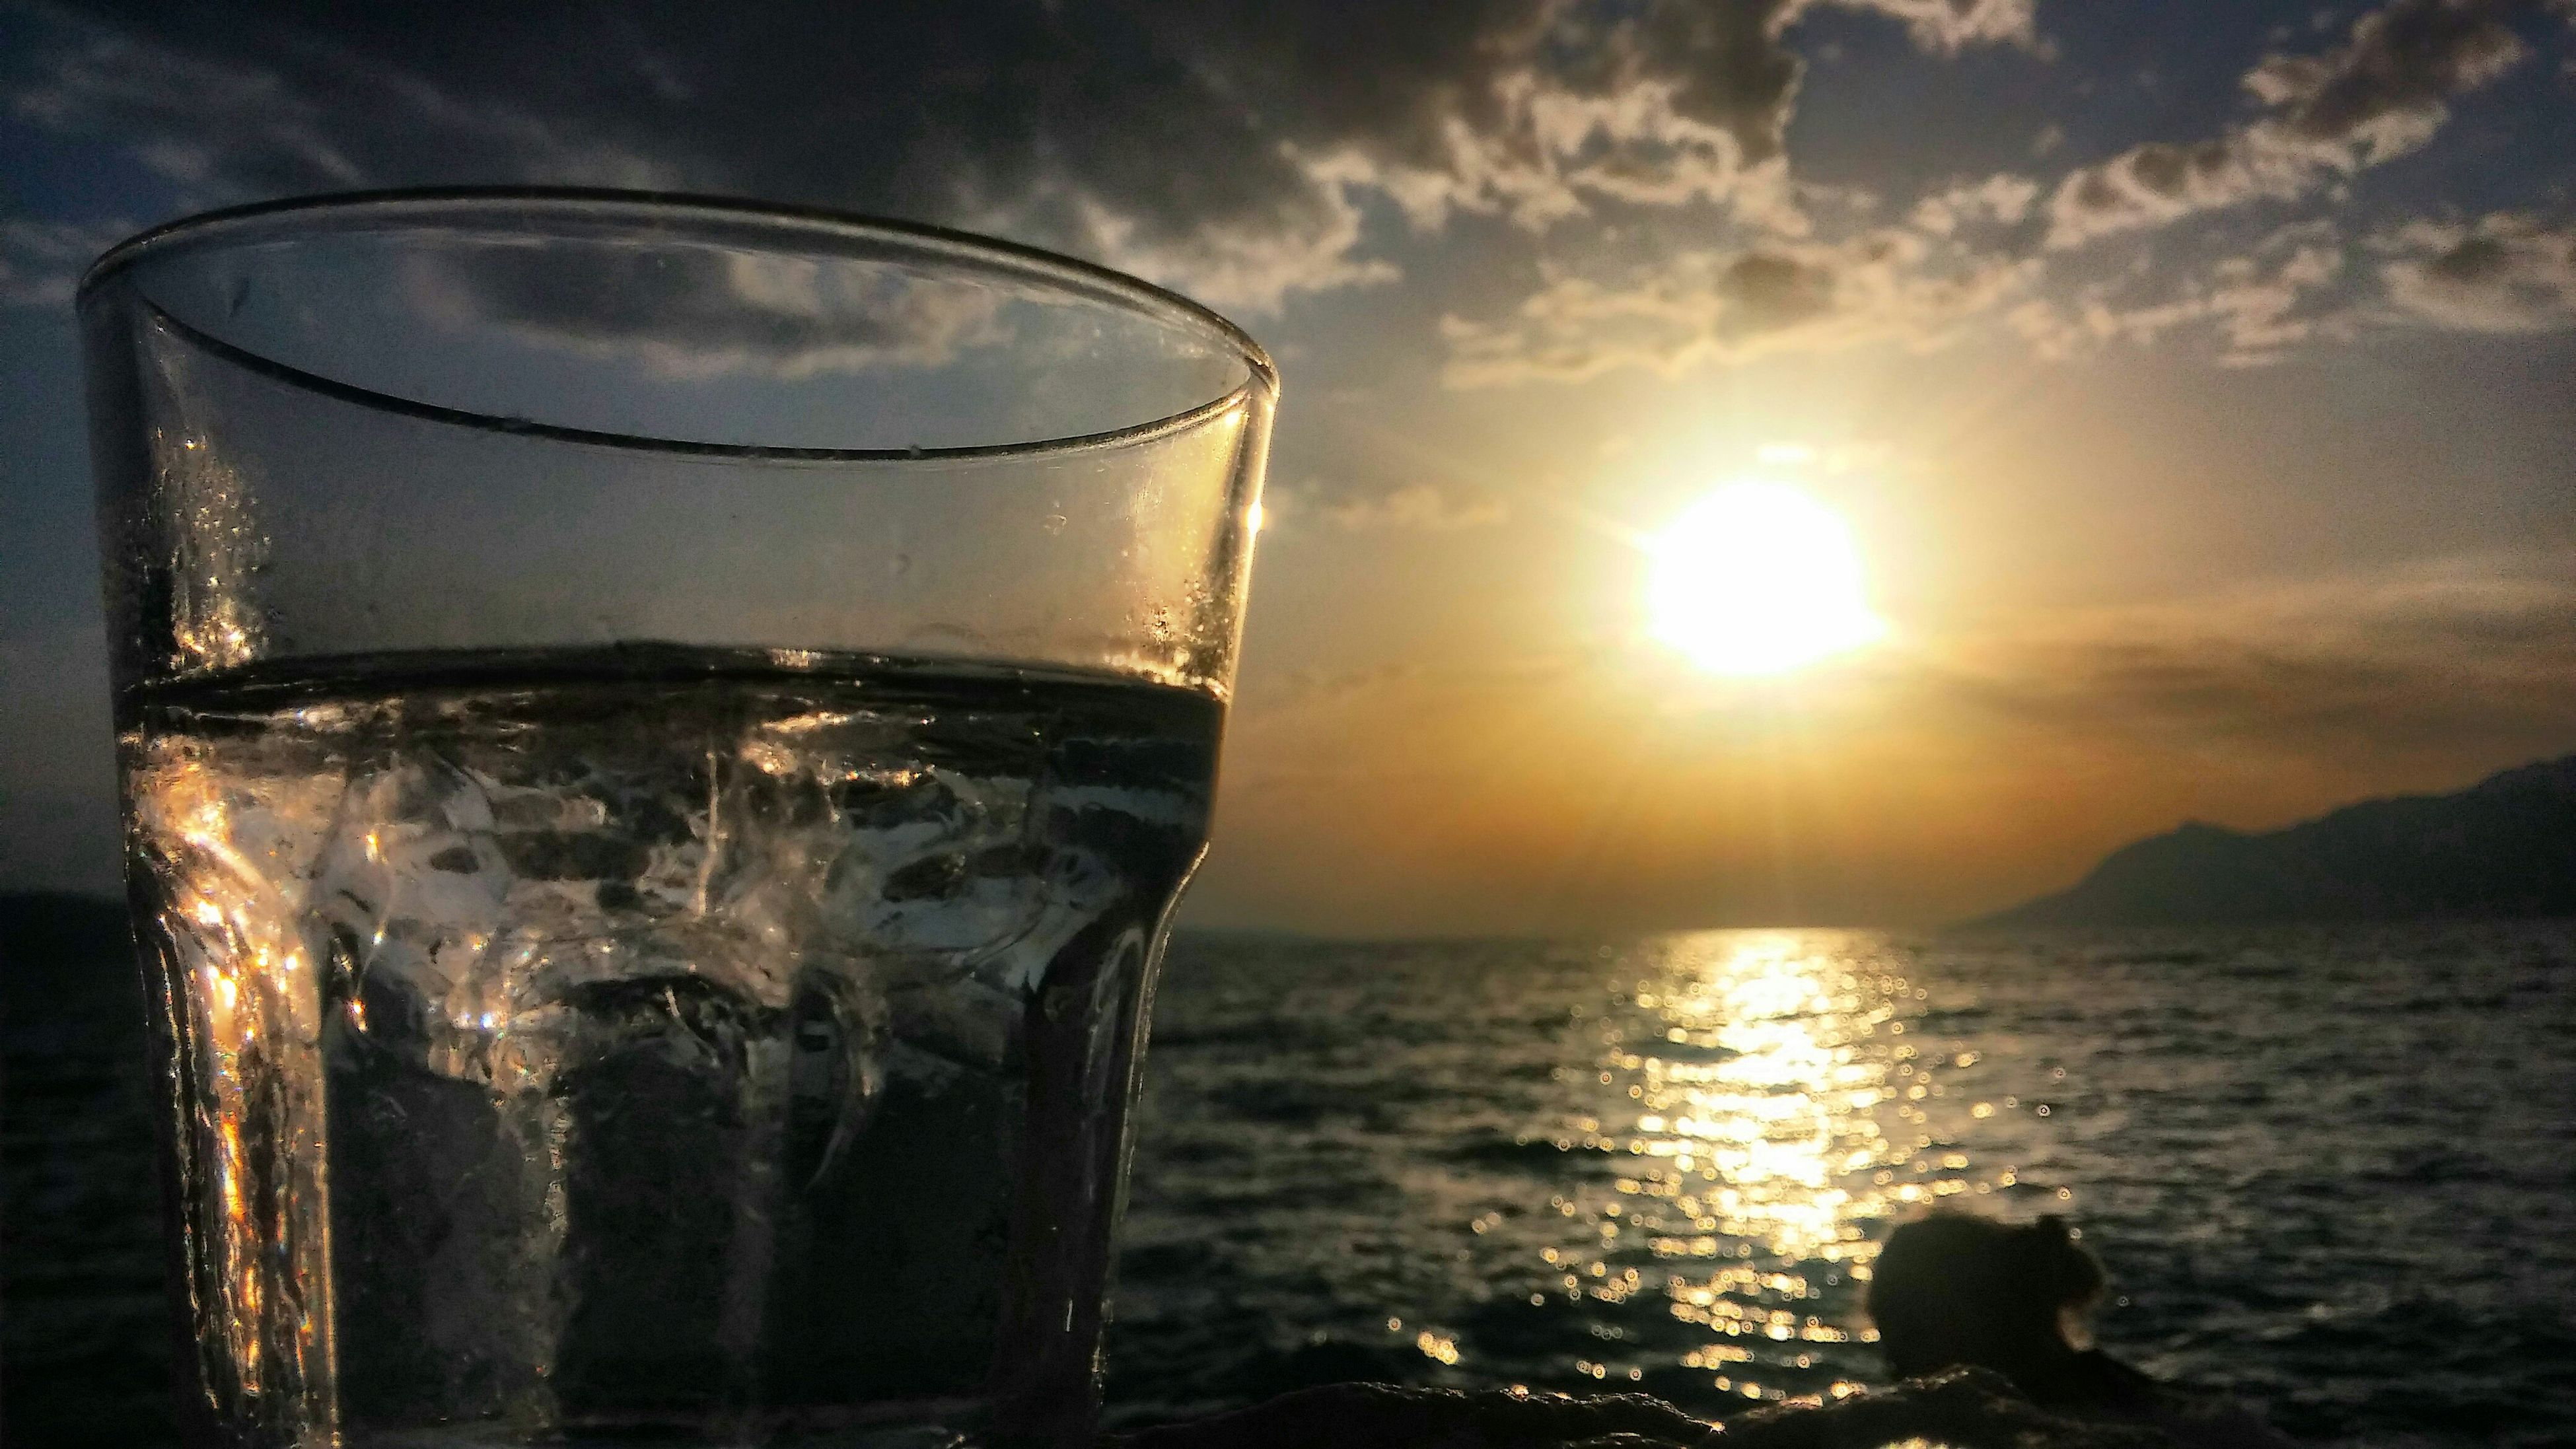 drink, refreshment, food and drink, drinking glass, water, sea, freshness, glass - material, close-up, still life, sky, transparent, table, reflection, alcohol, horizon over water, indoors, sunlight, no people, sunset